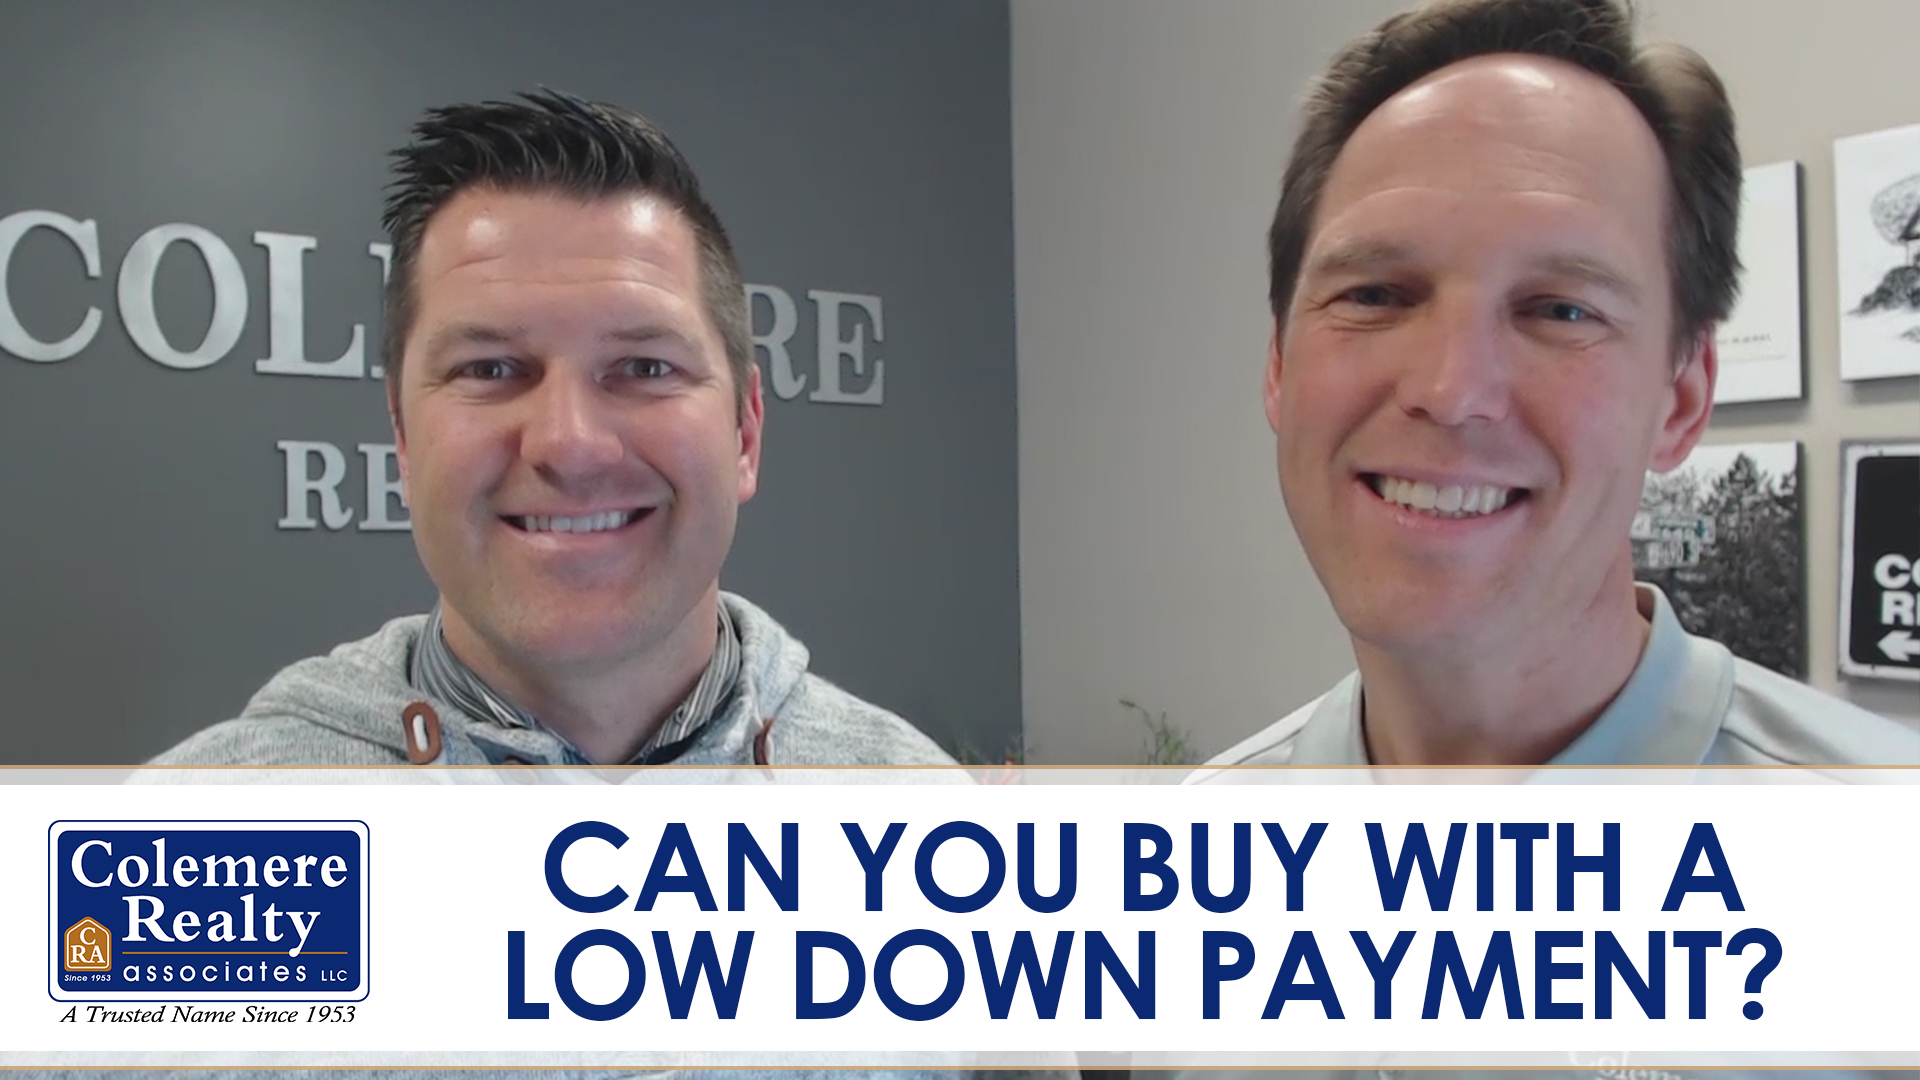 Are There Opportunities to Buy With a Low Down Payment?